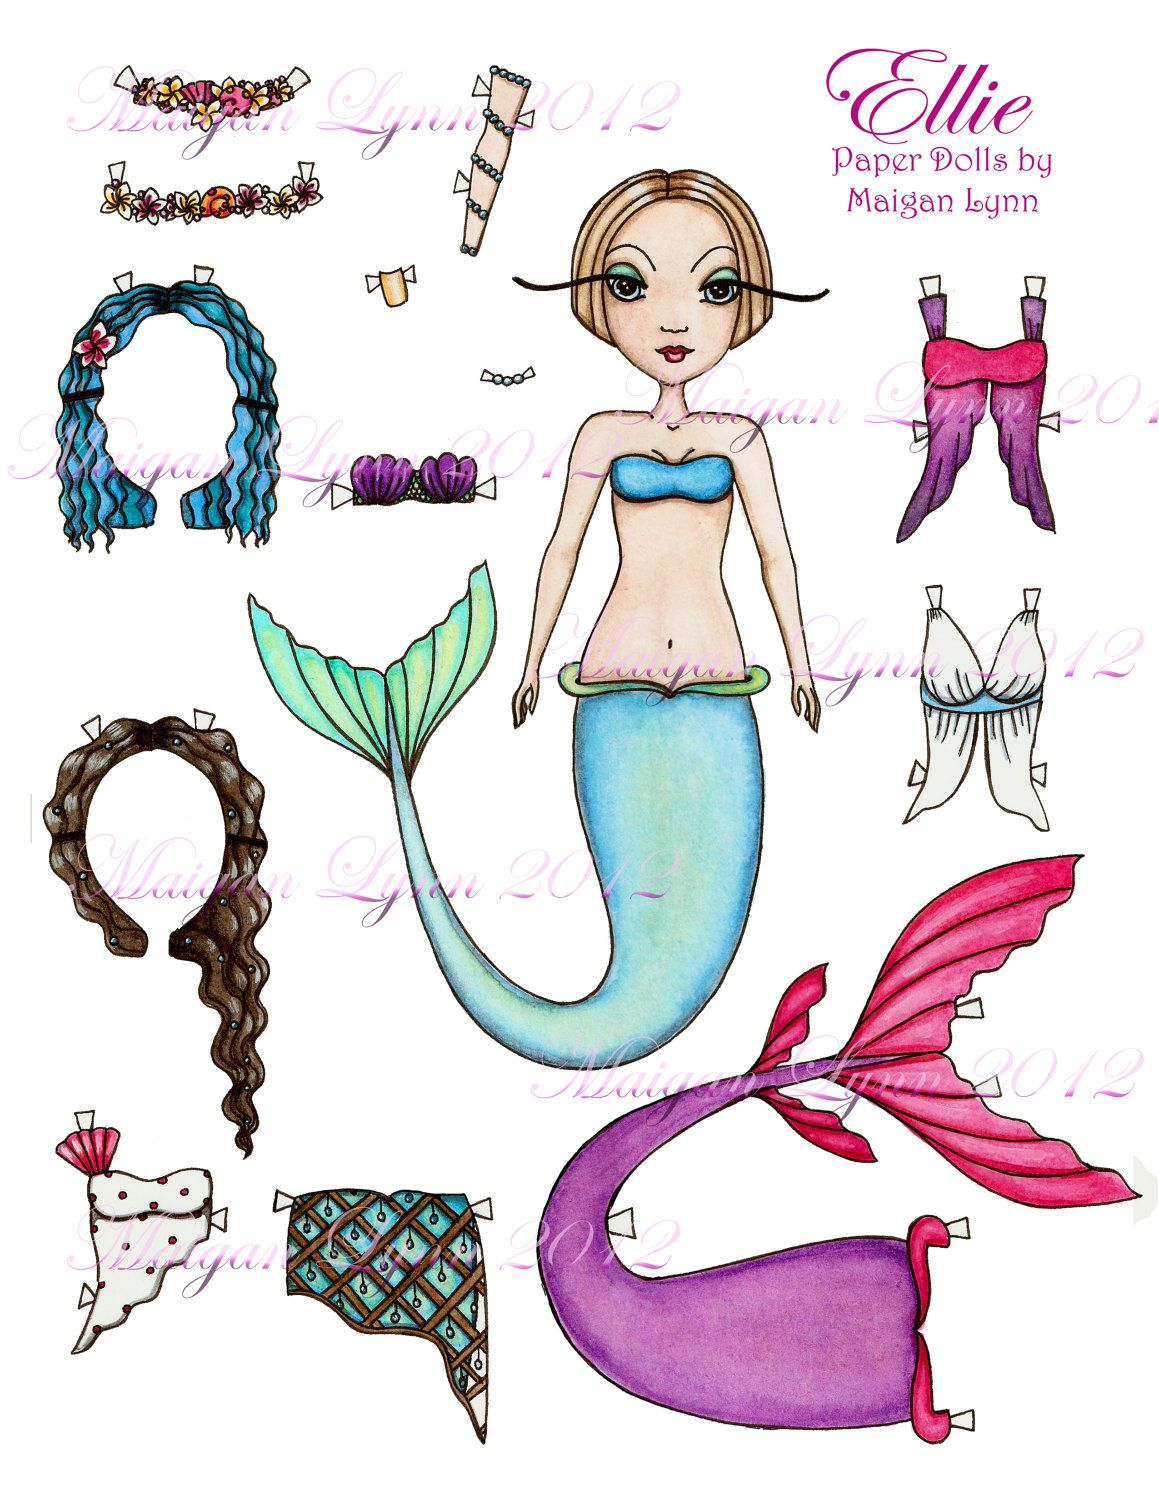 graphic regarding Paper Dolls to Printable identified as Paper Doll Ellie PDF printable down load through Maigan Lynn. I